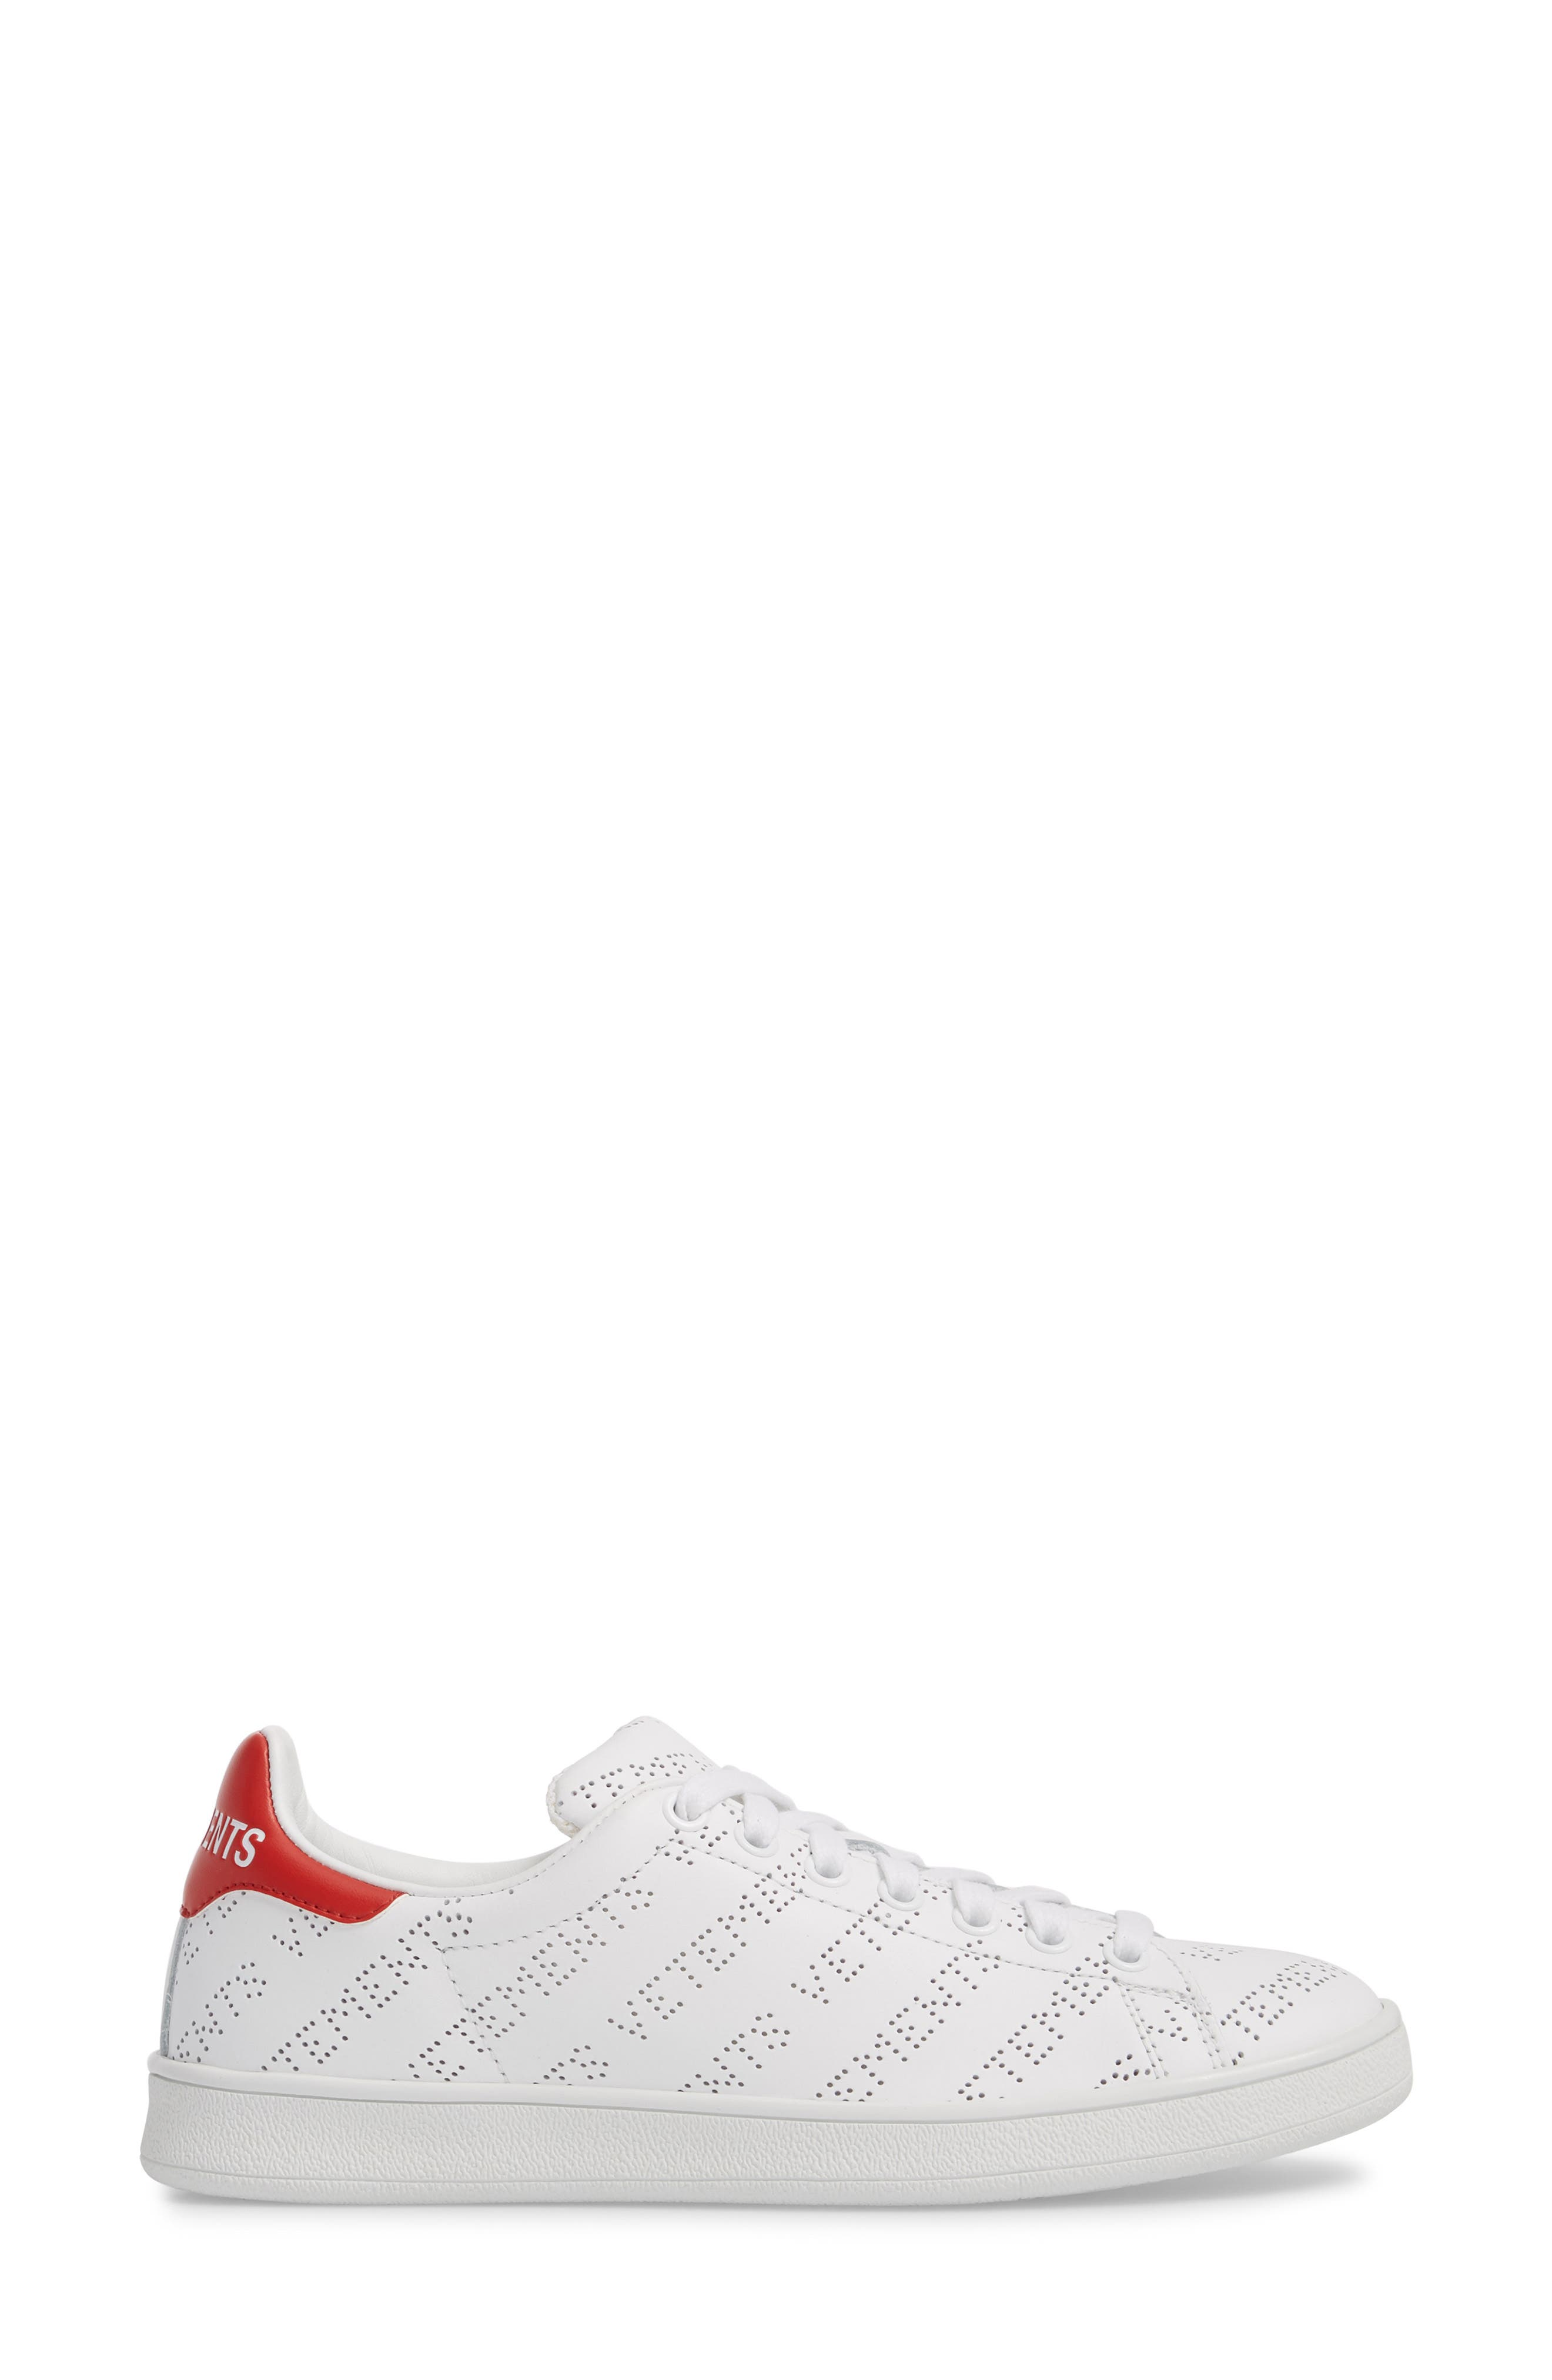 Perforated Sneaker,                             Alternate thumbnail 3, color,                             WHITE RED